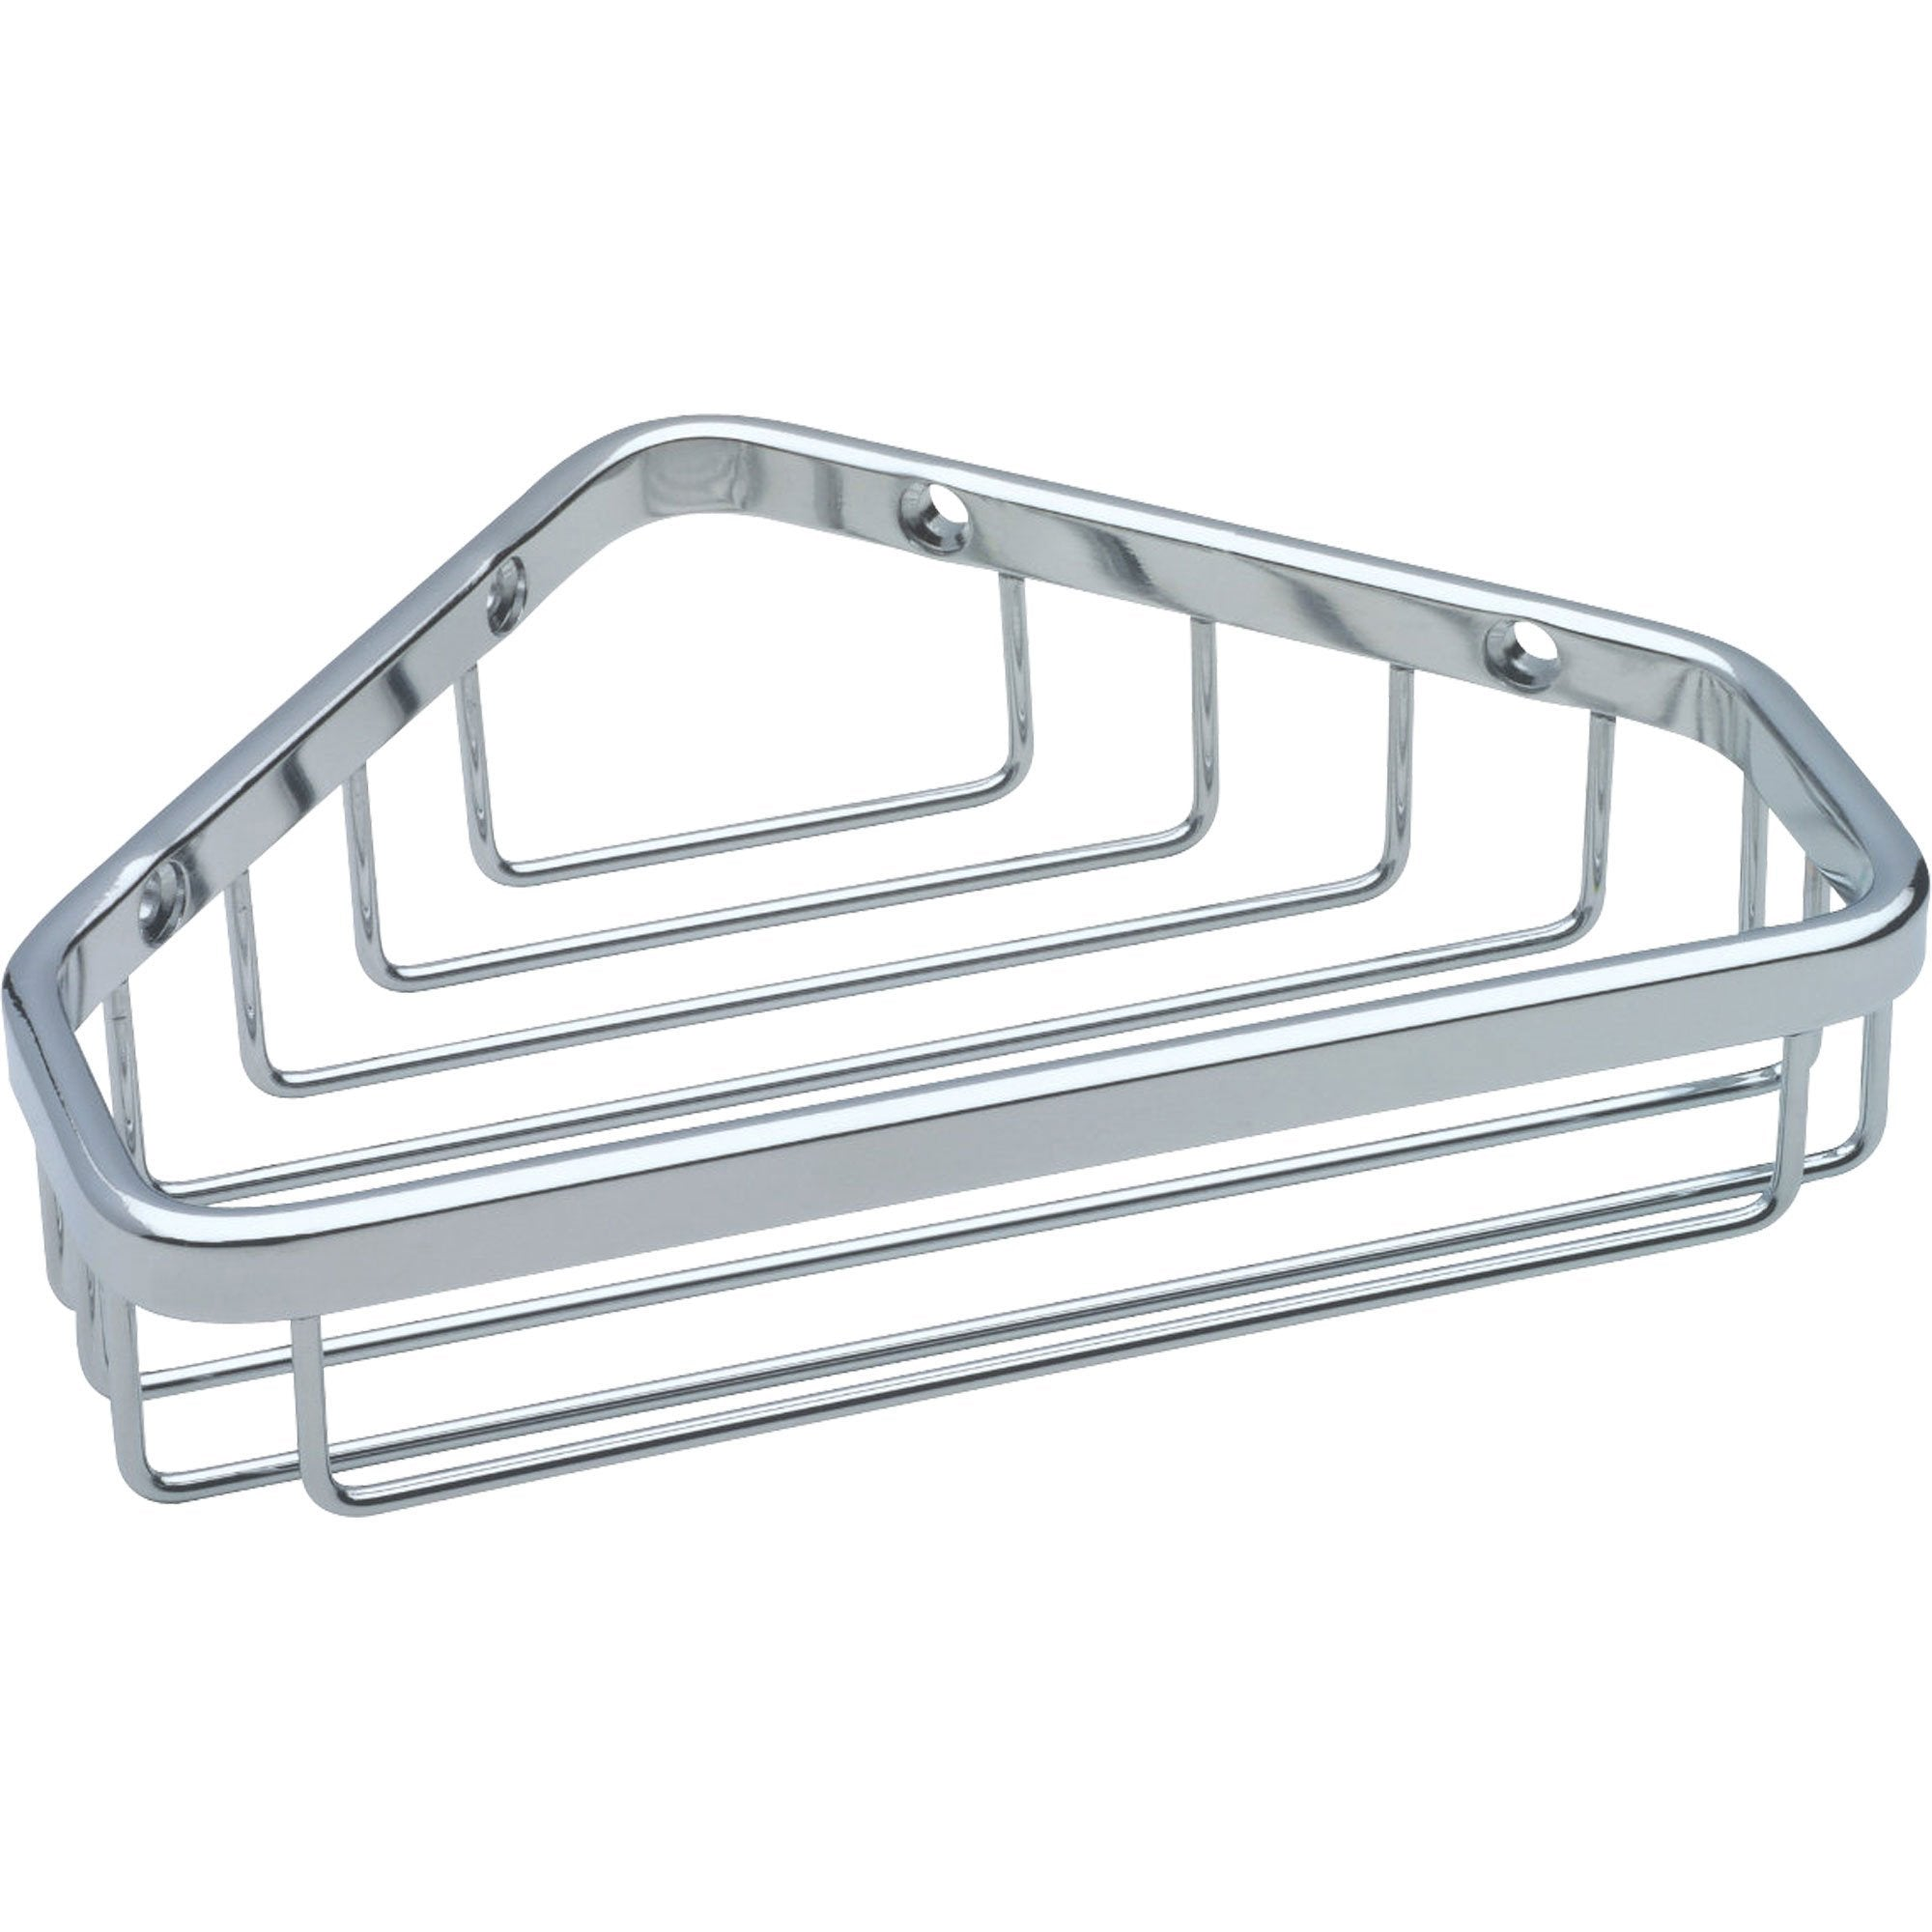 Delta Bright Stainless Steel Finish Small Corner Shower Wire Rack Caddy 567271